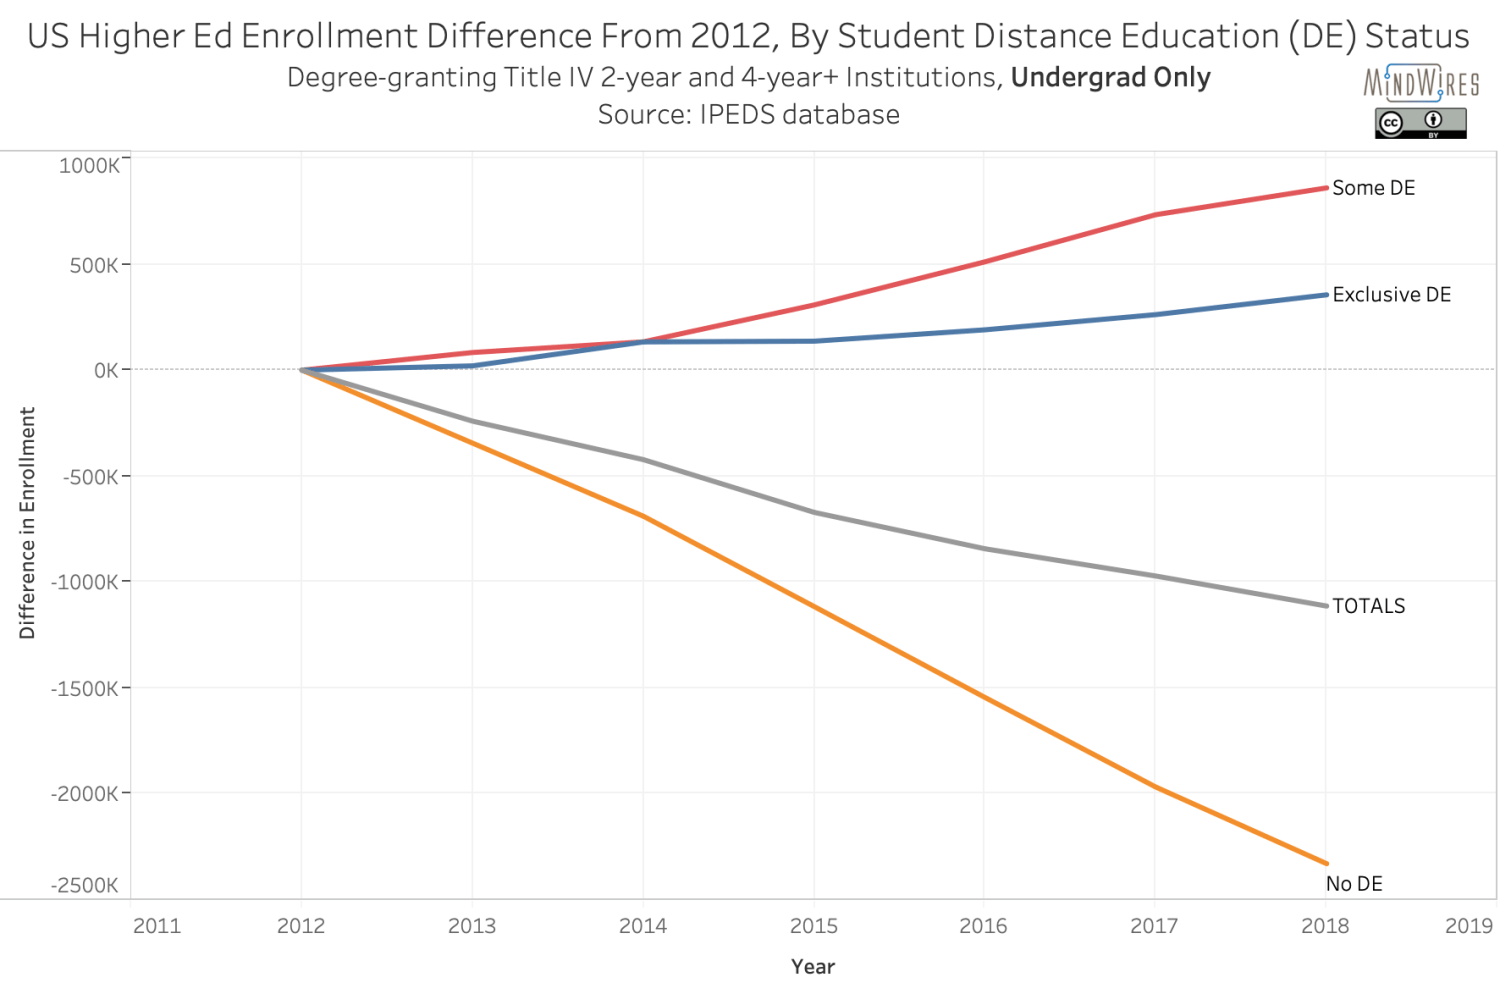 US Higher Ed Enrollment Difference From 2012, By Student Distance Education (DE) Status - undergrad only